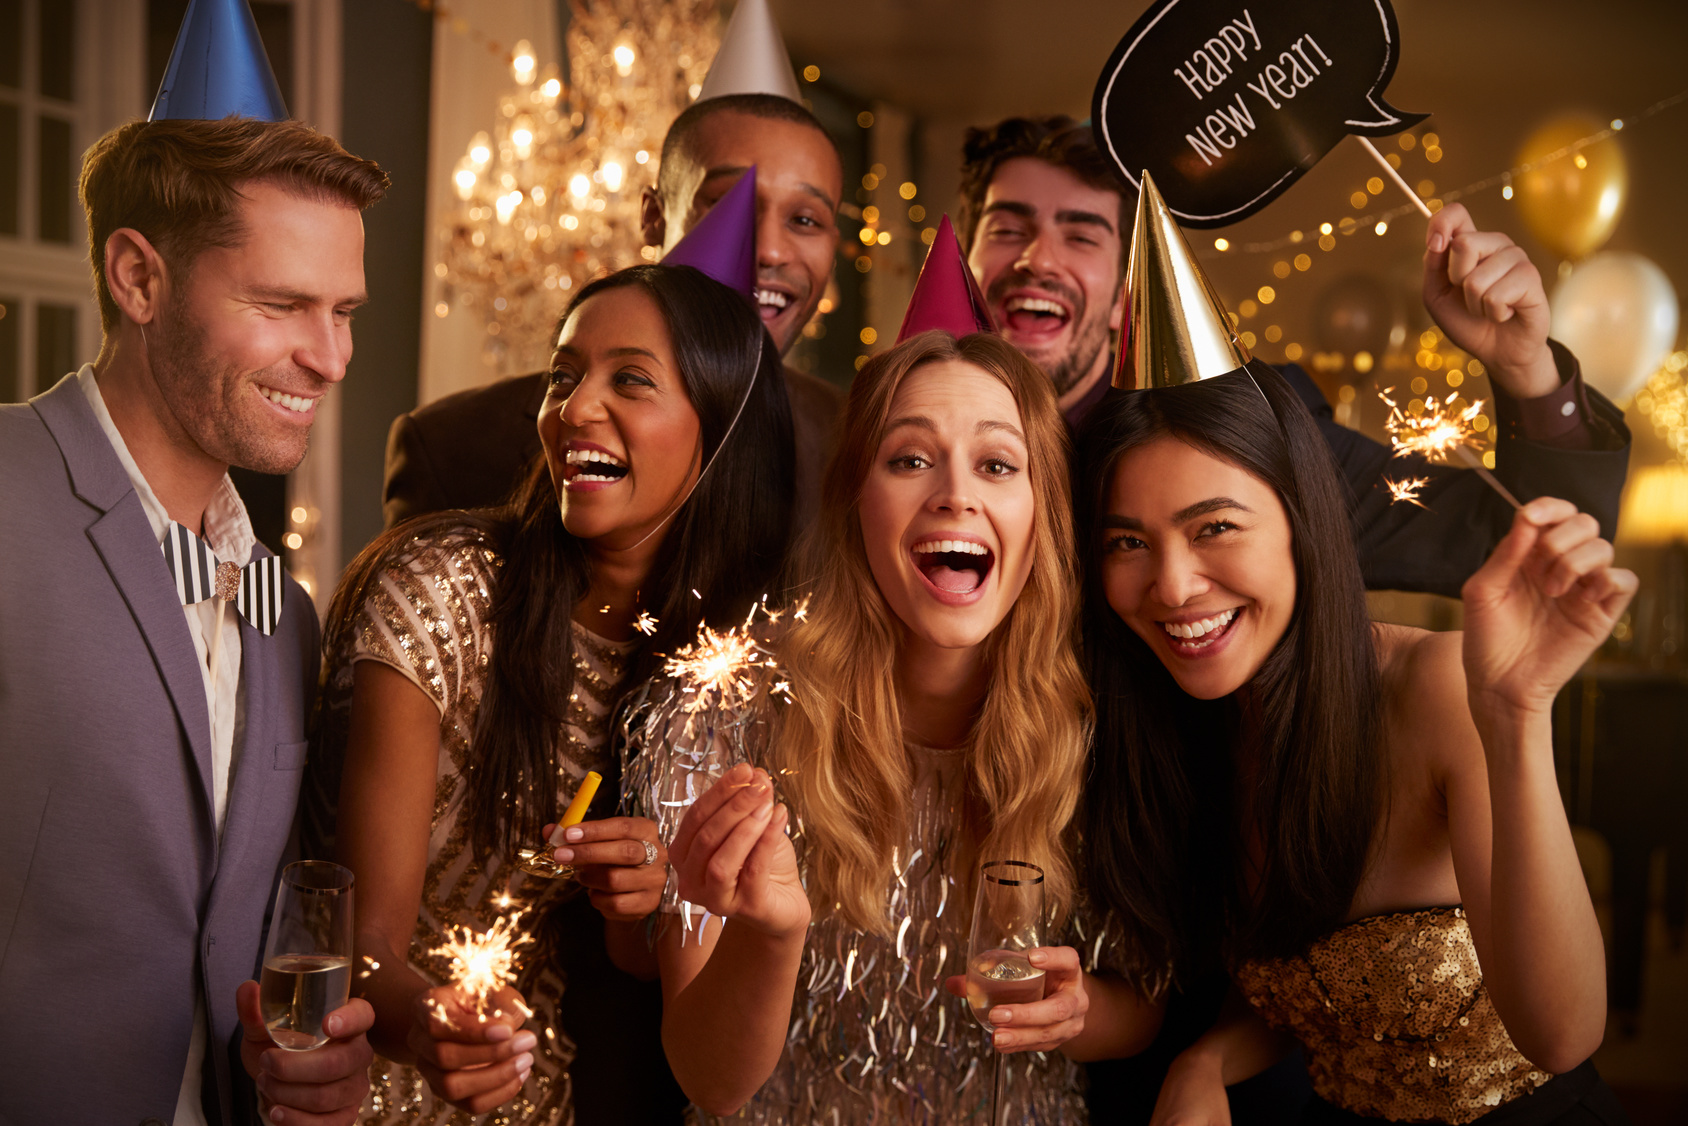 Group Of Friends Celebrating At New Year Party Together | Stars and ...